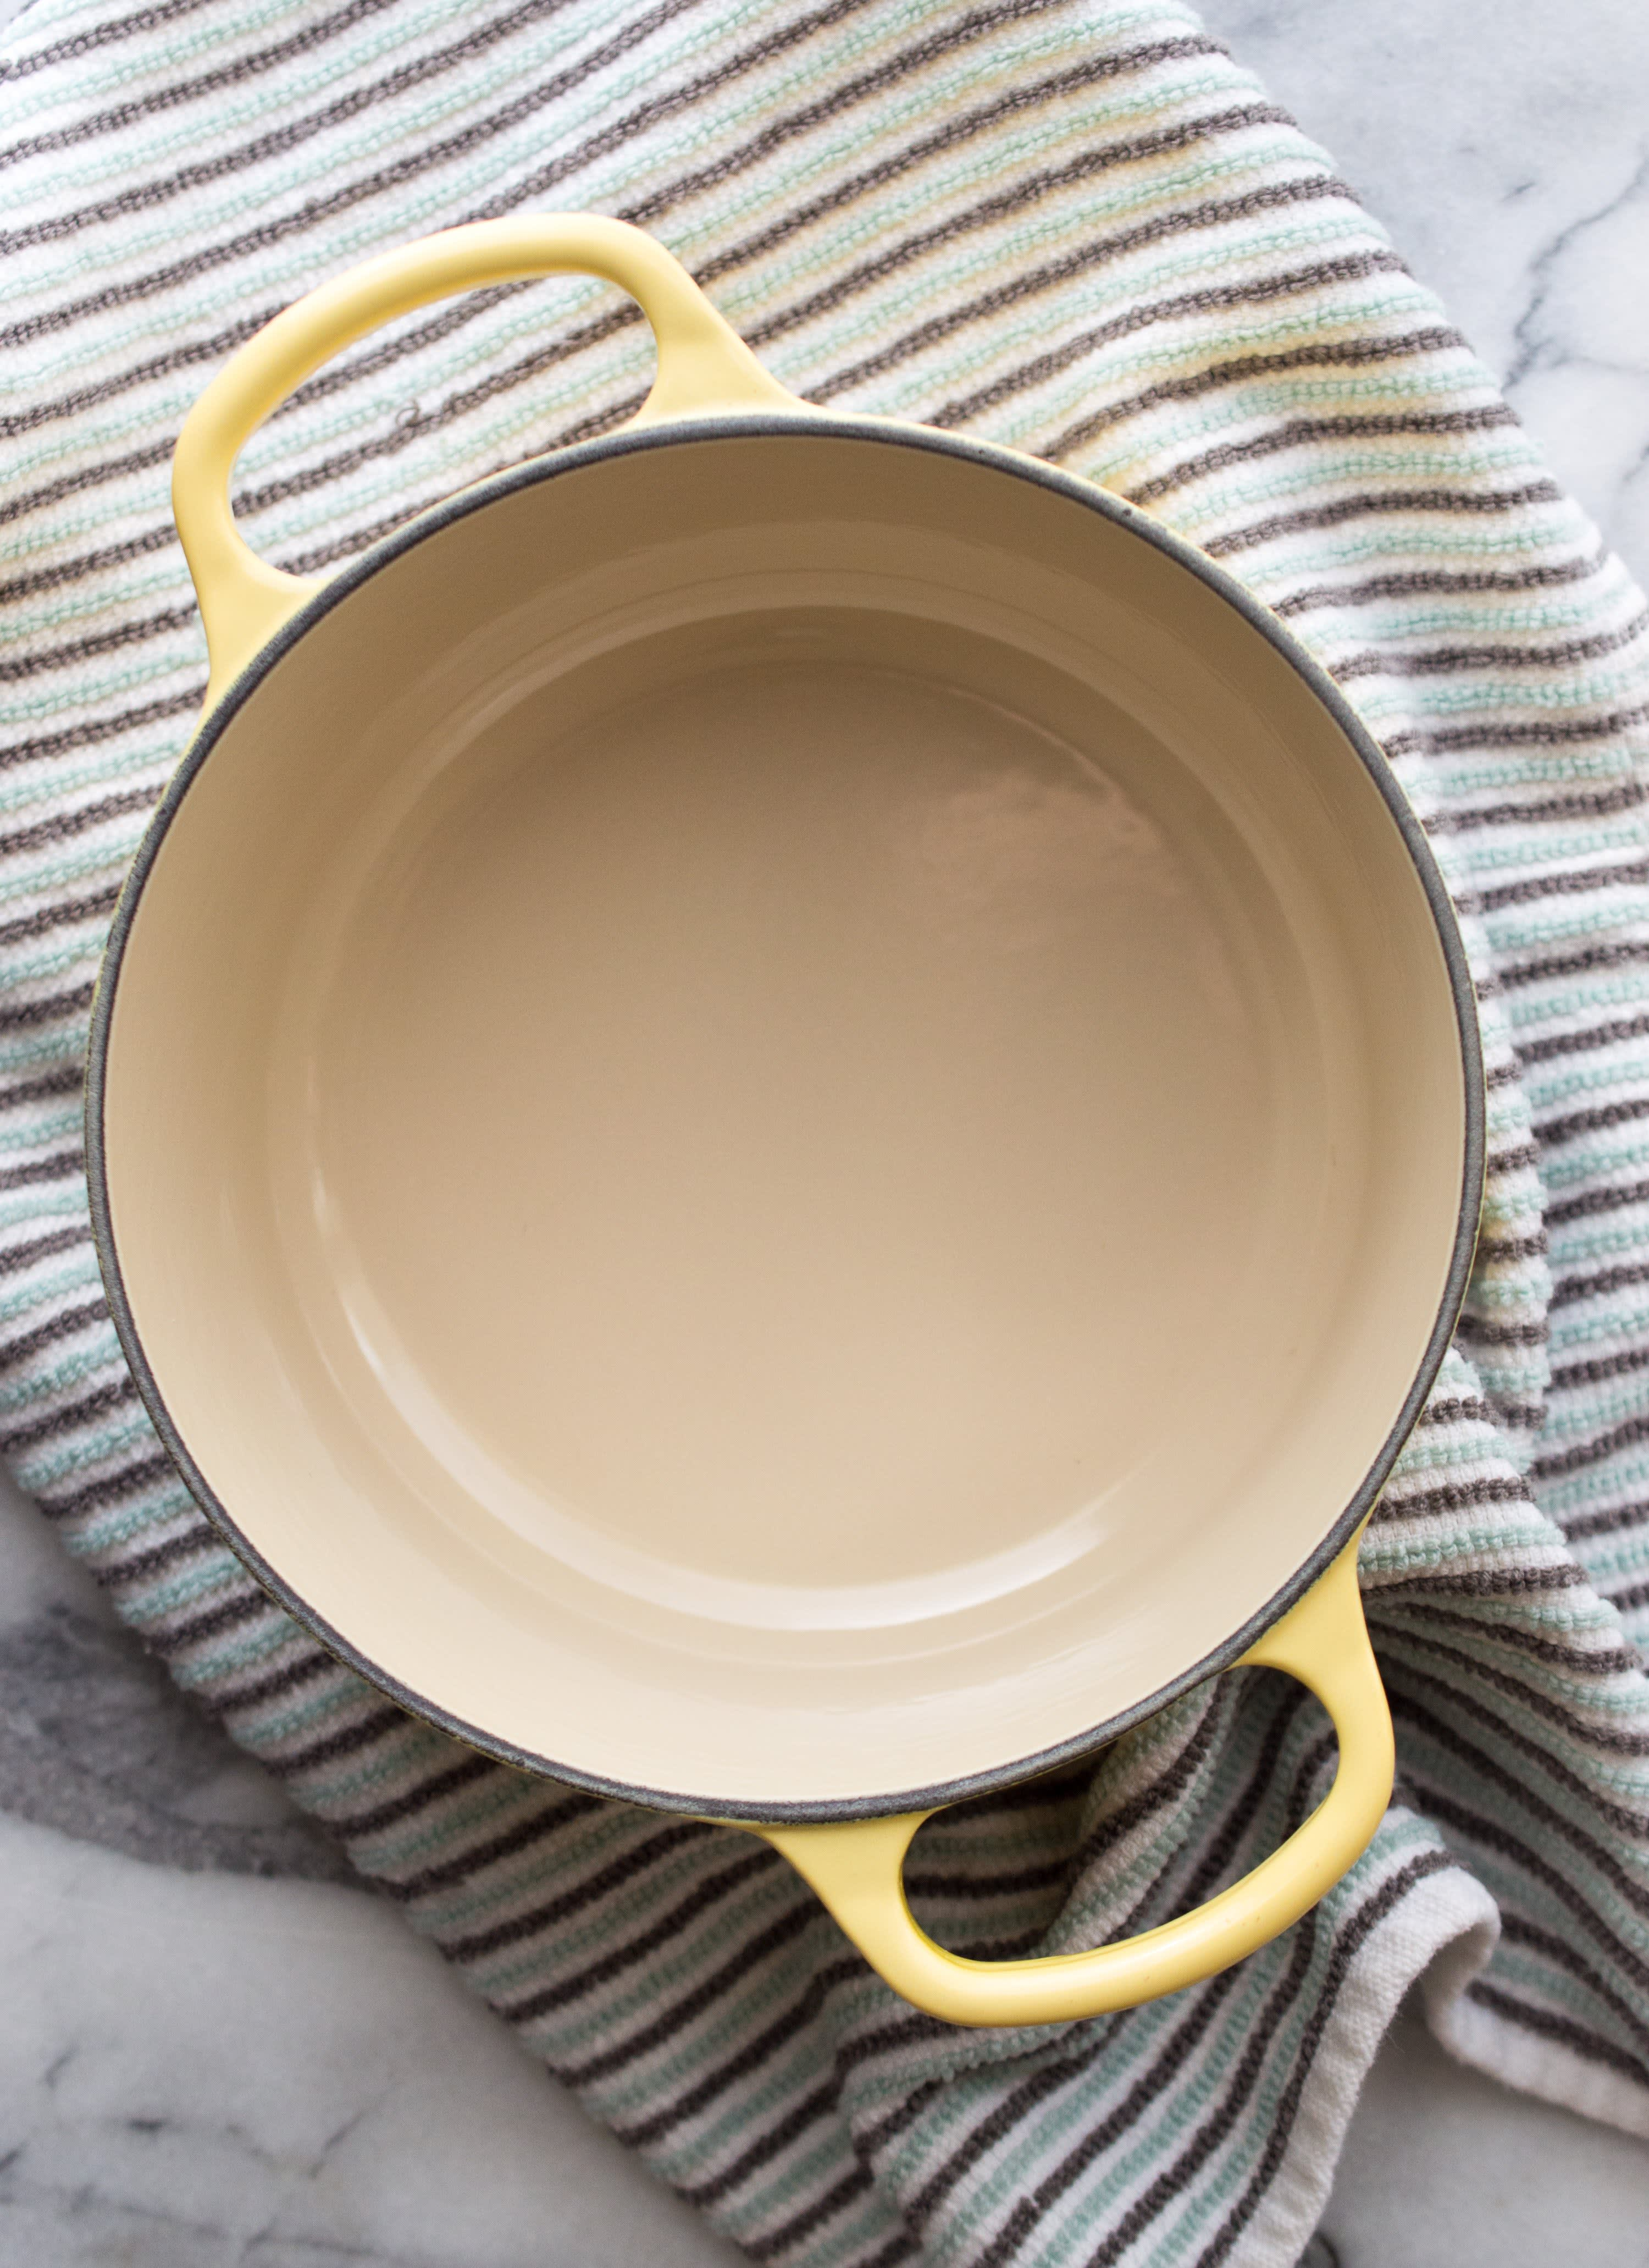 How To Clean Burnt Stains Off Enameled Dutch Oven Kitchn